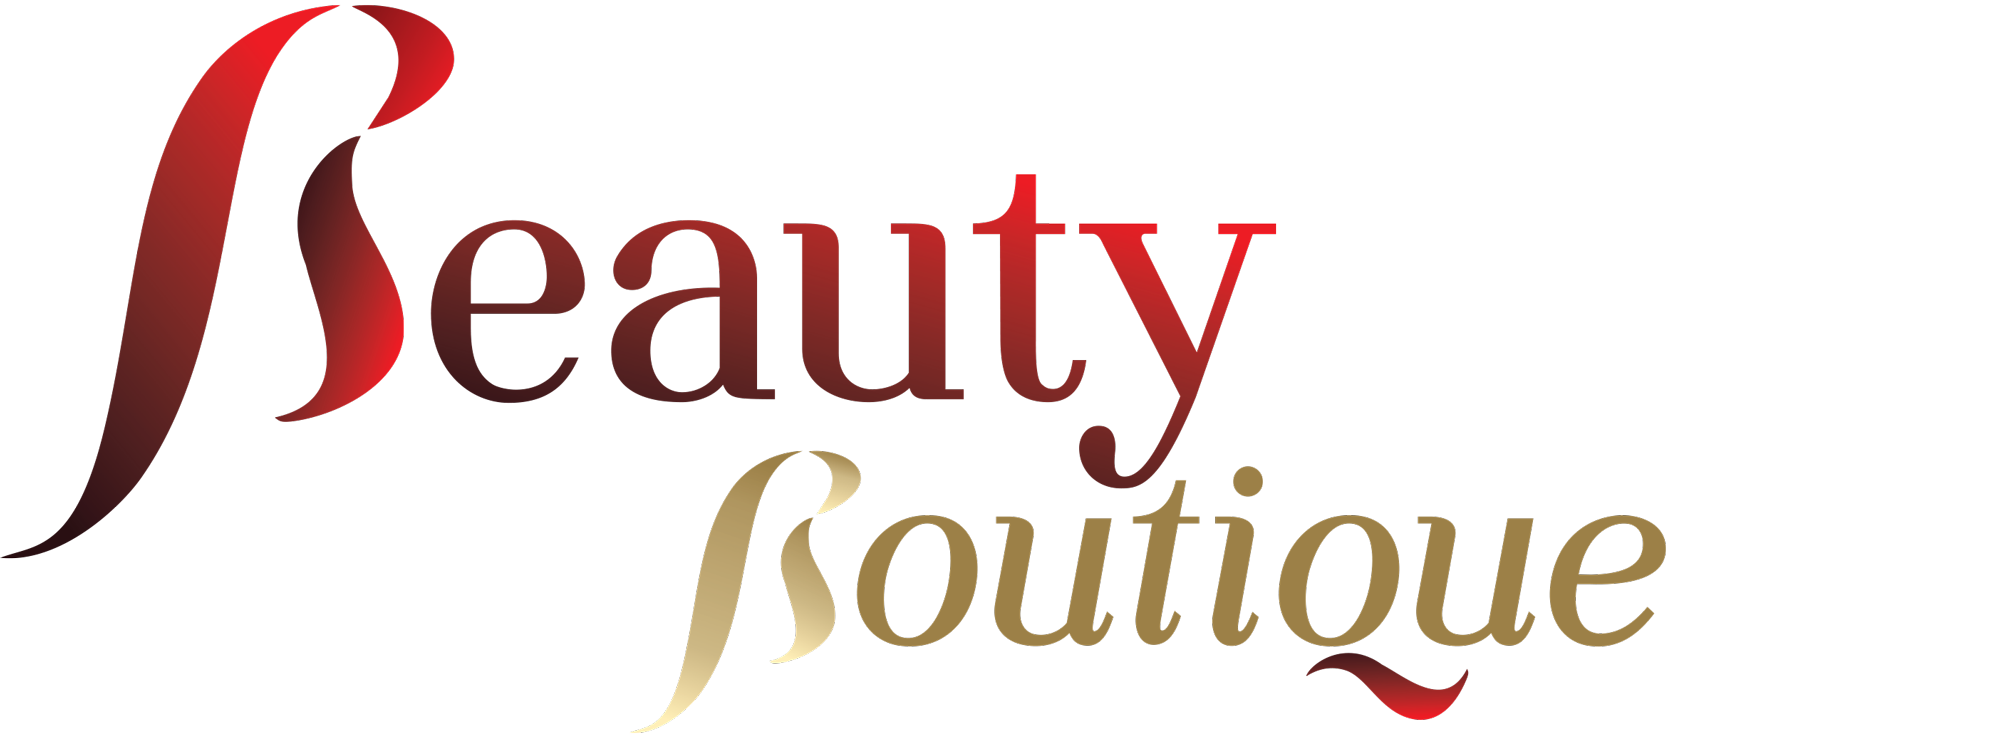 Beautyboutique.no